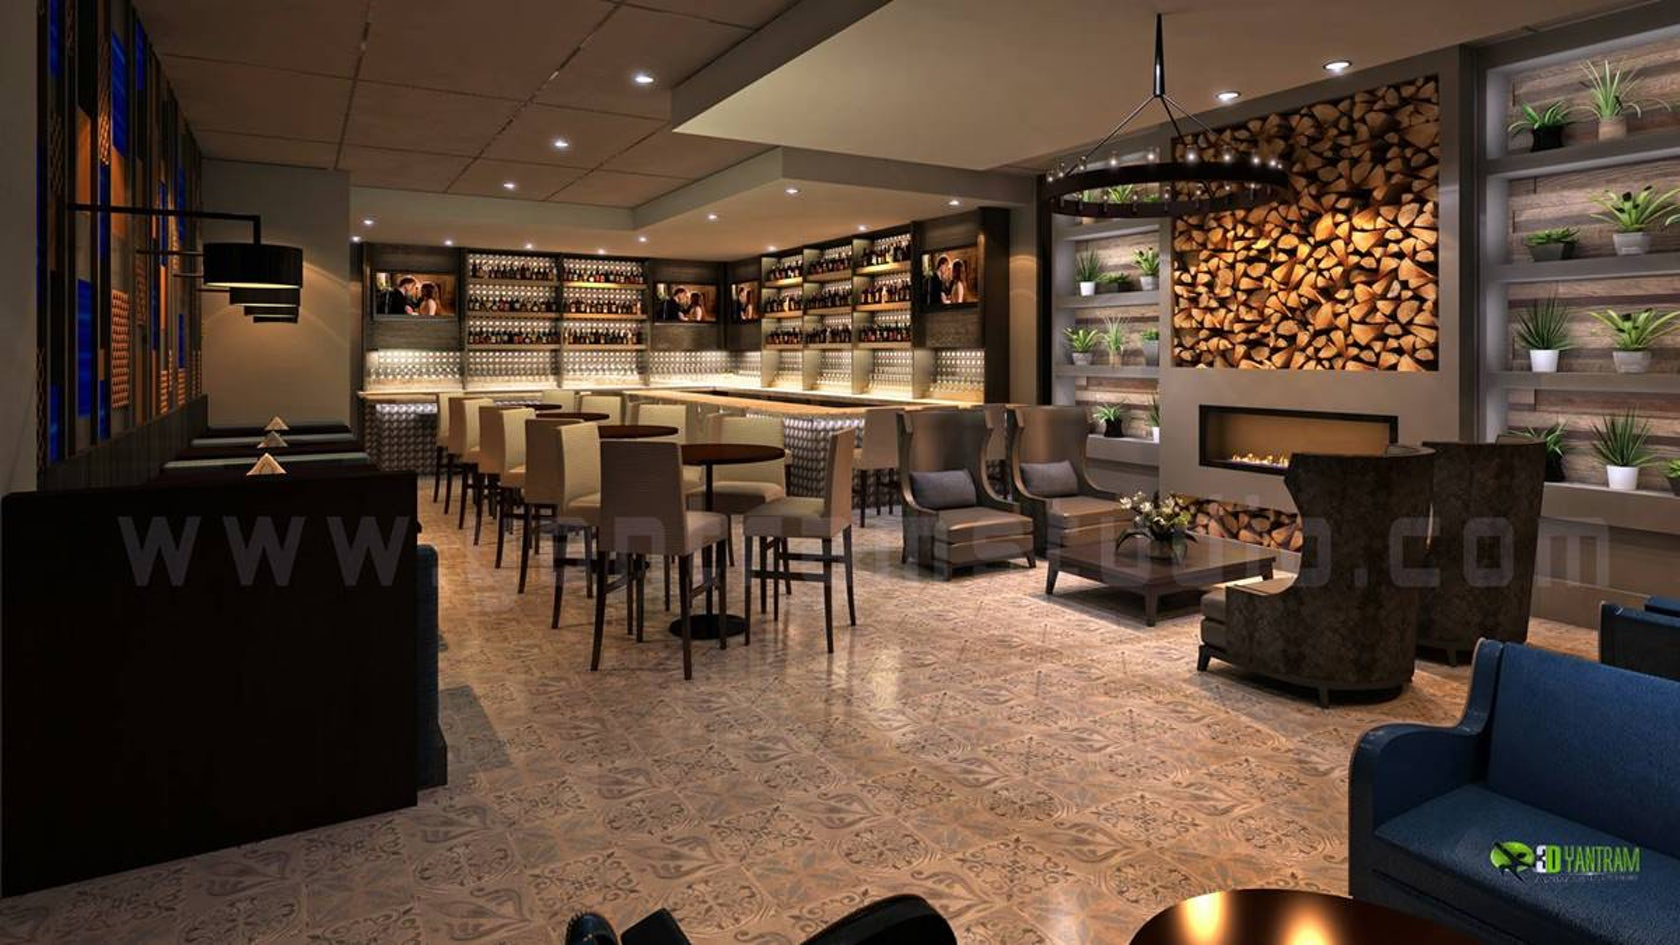 Commercial d bar interior rendering design view architizer